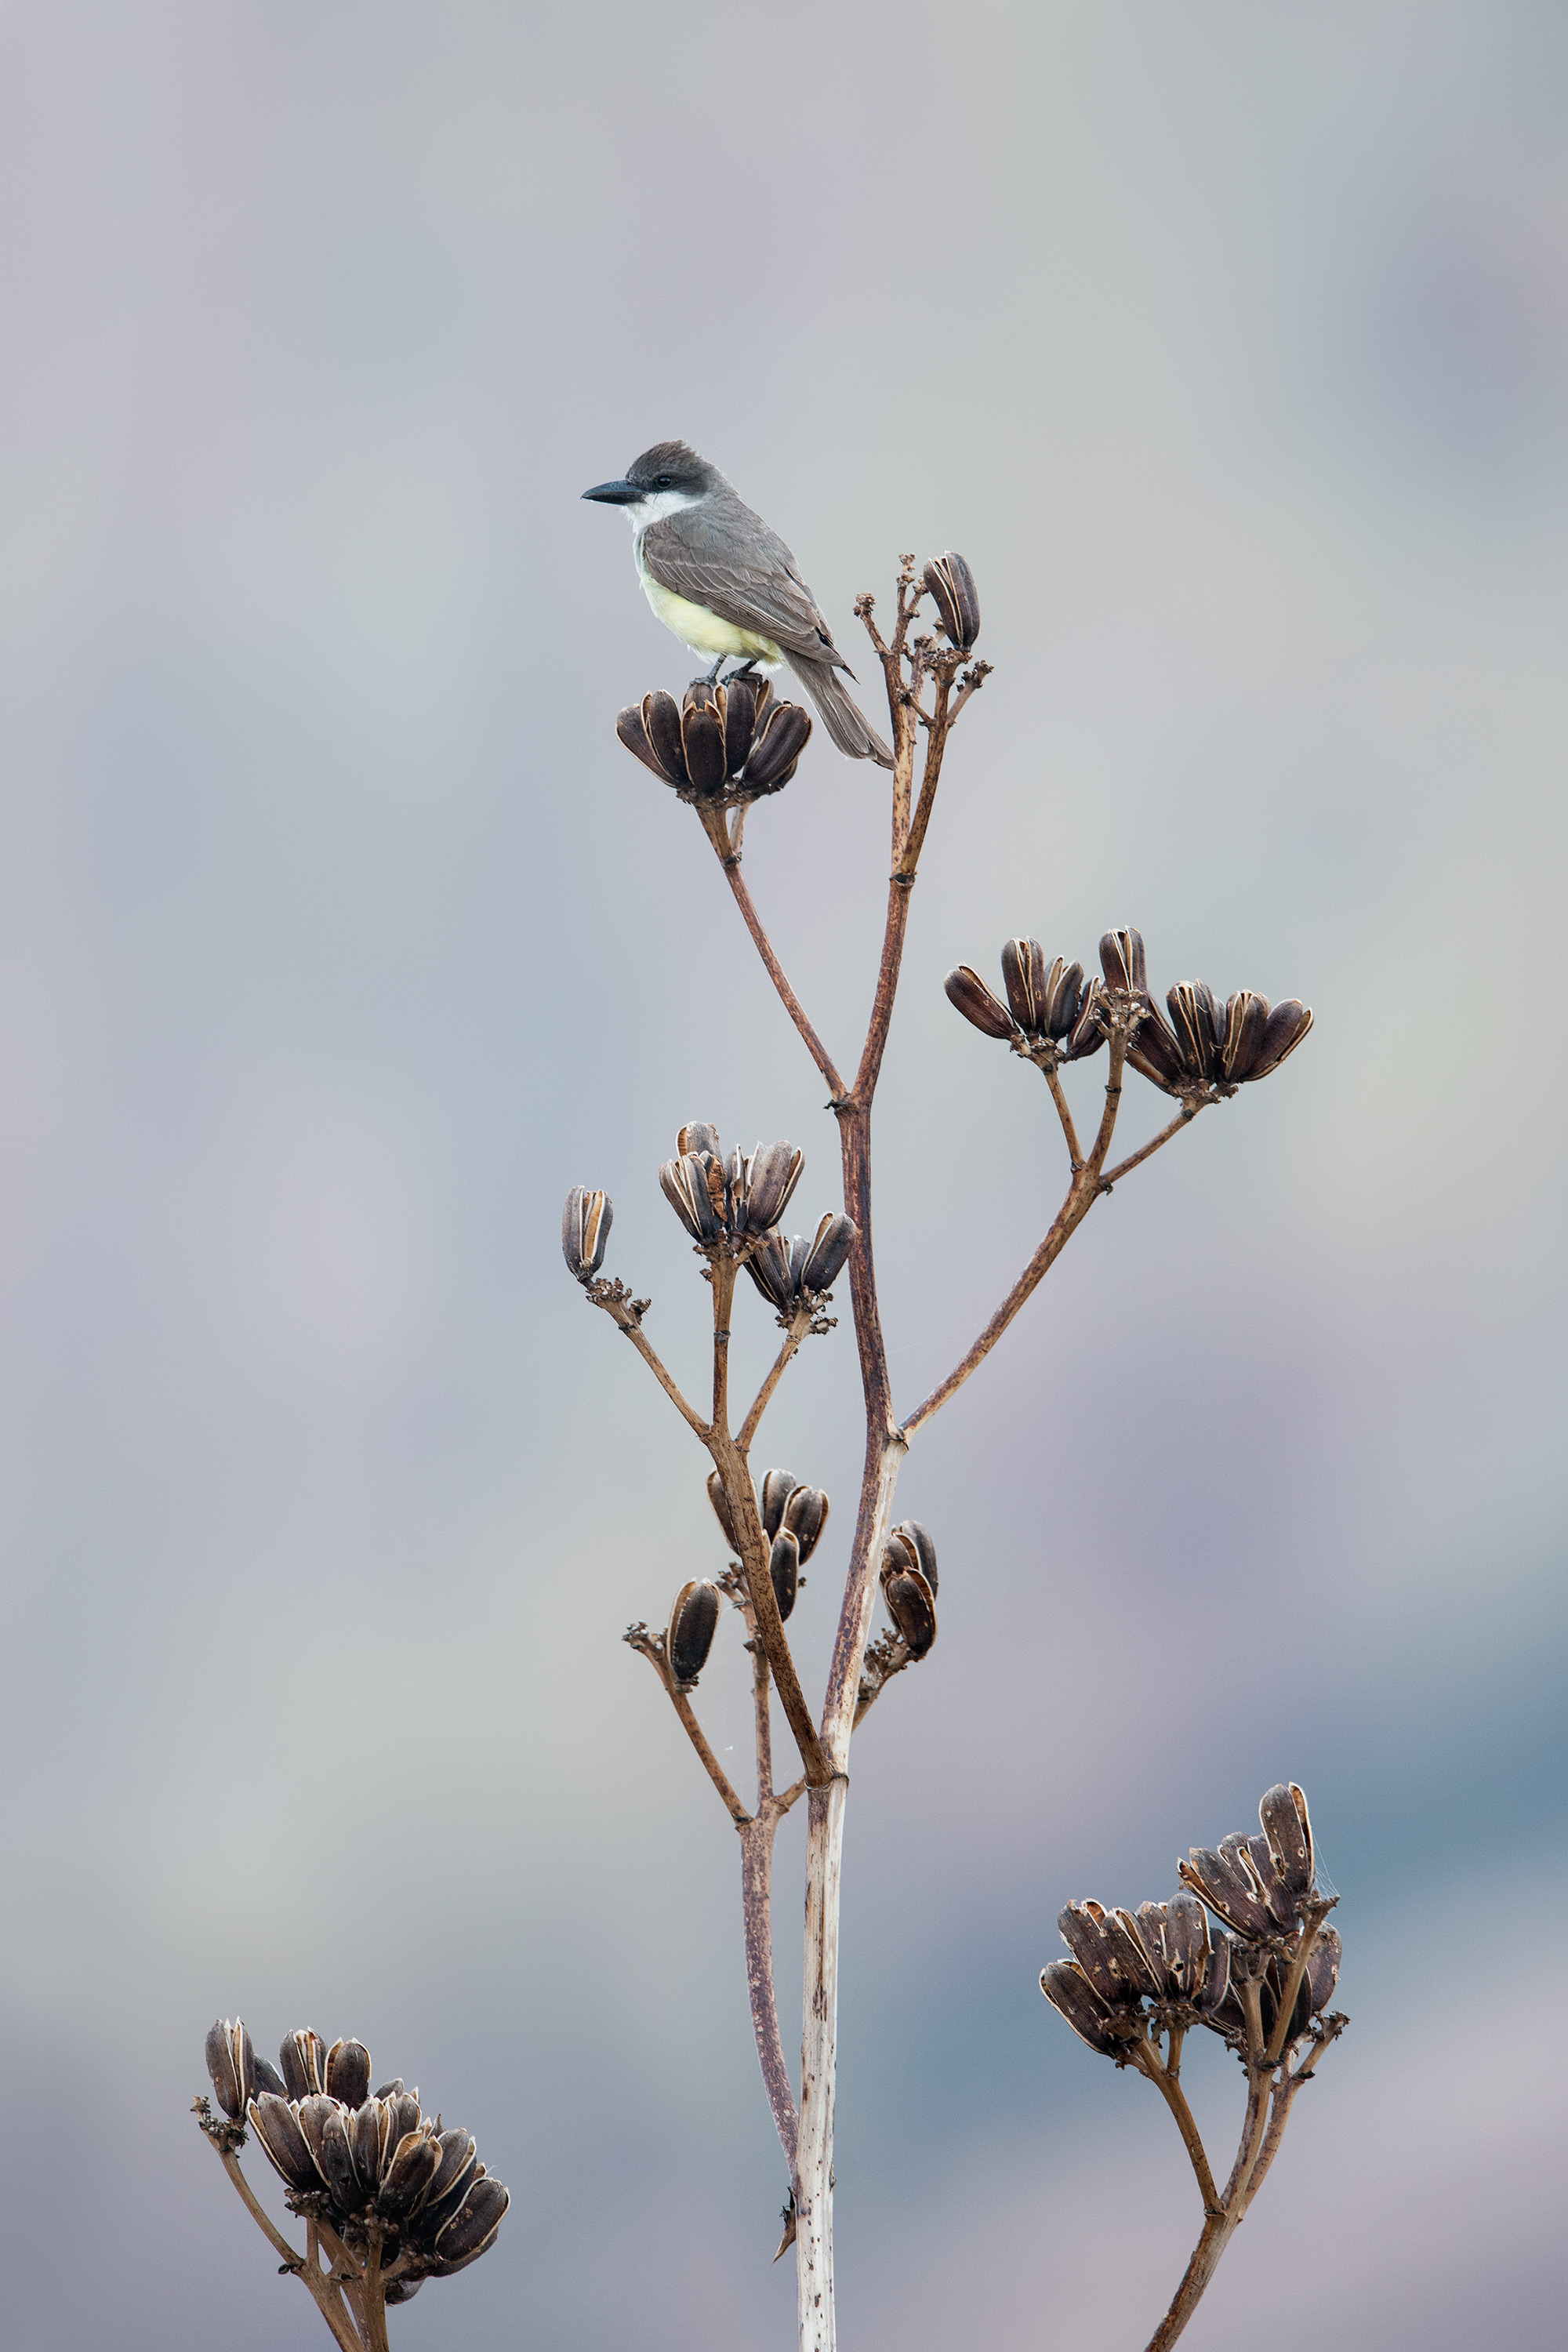 thick-billed_kingbird_4739x3k.jpg